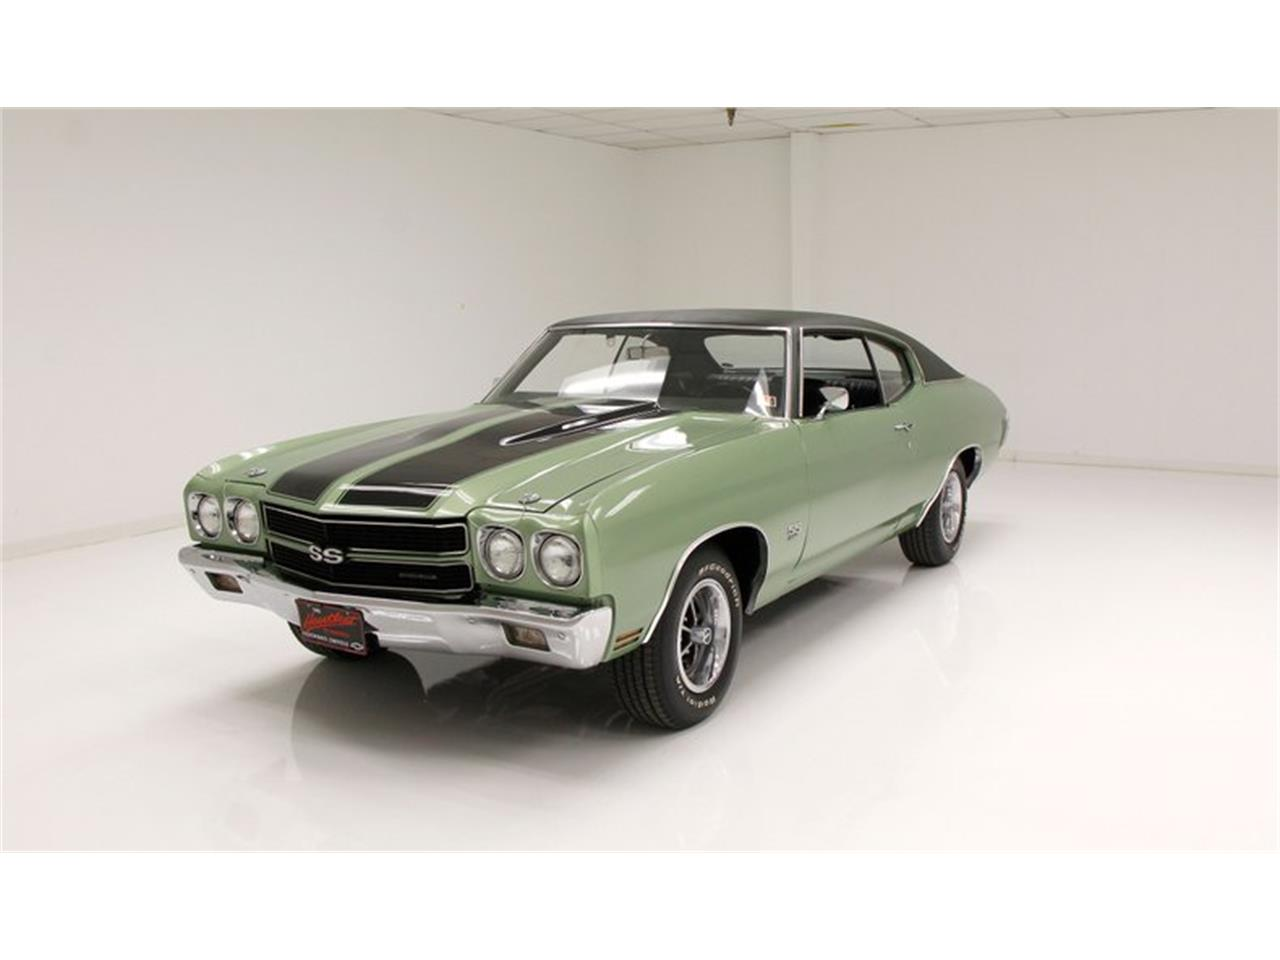 1970 Chevrolet Chevelle (CC-1333698) for sale in Morgantown, Pennsylvania